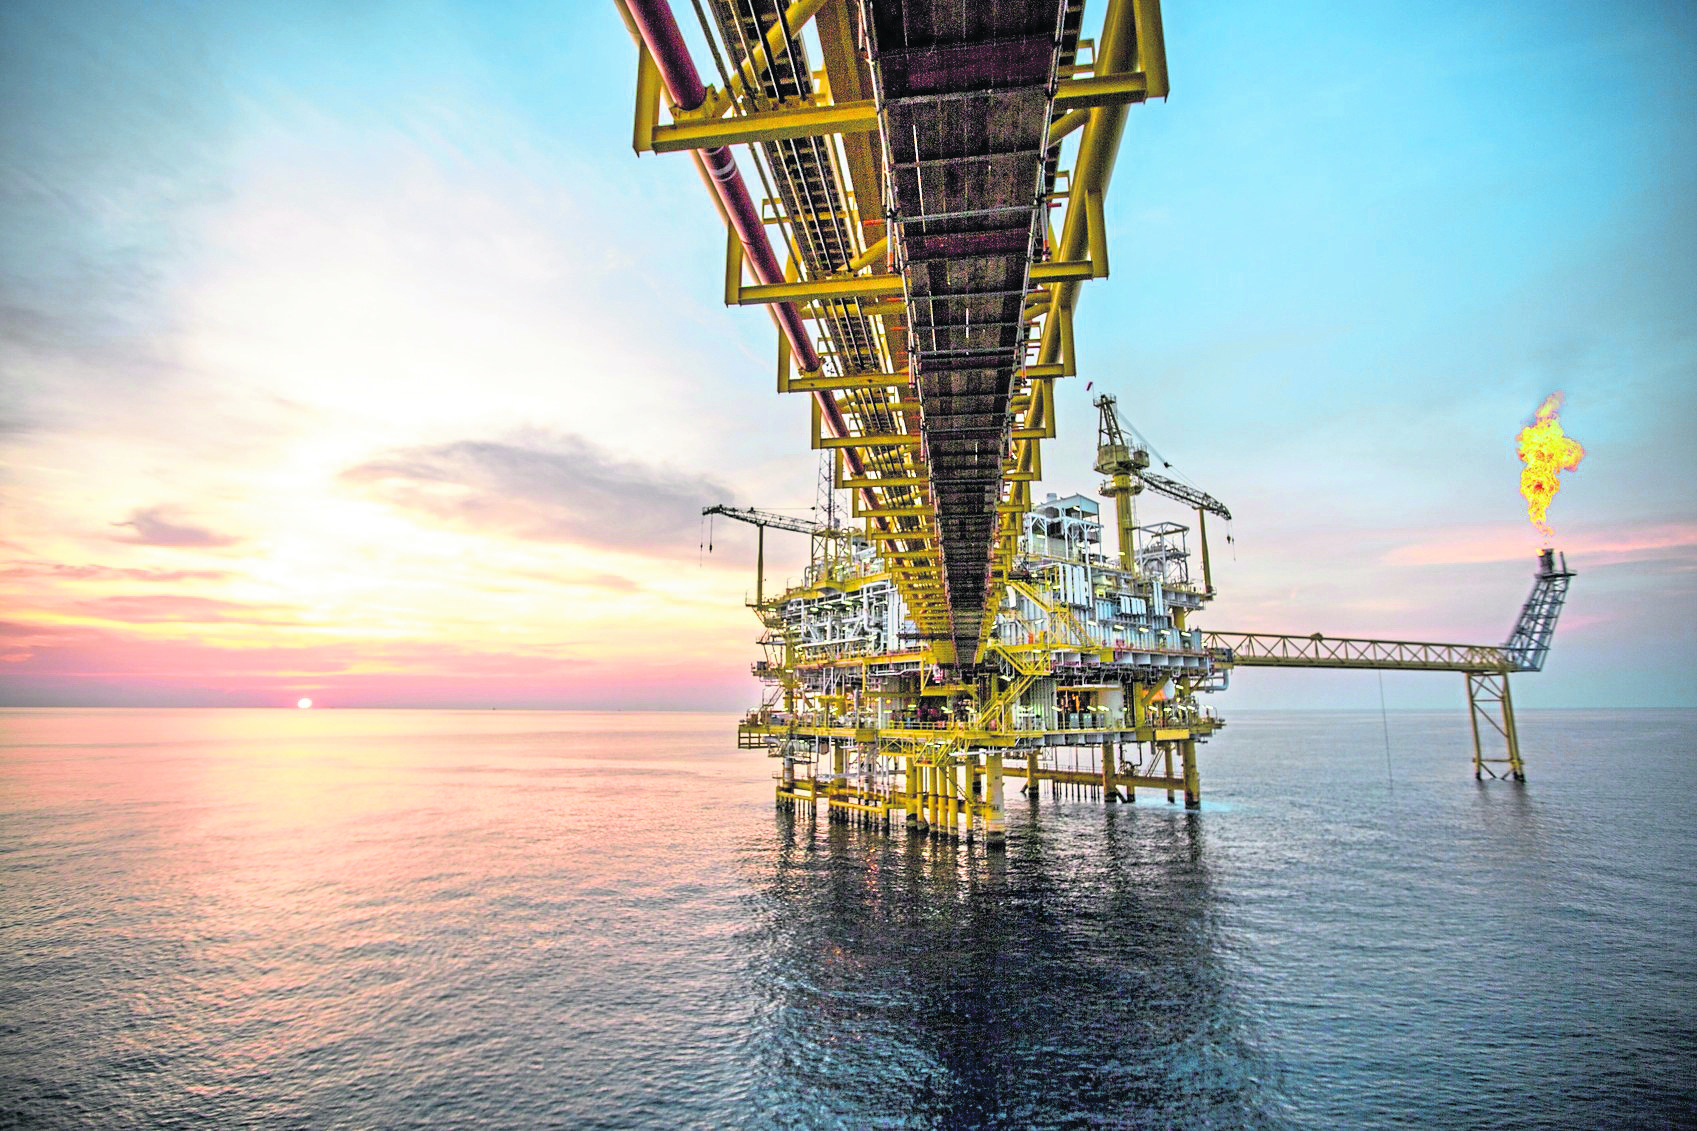 Offshore platform for the production of oil and gas